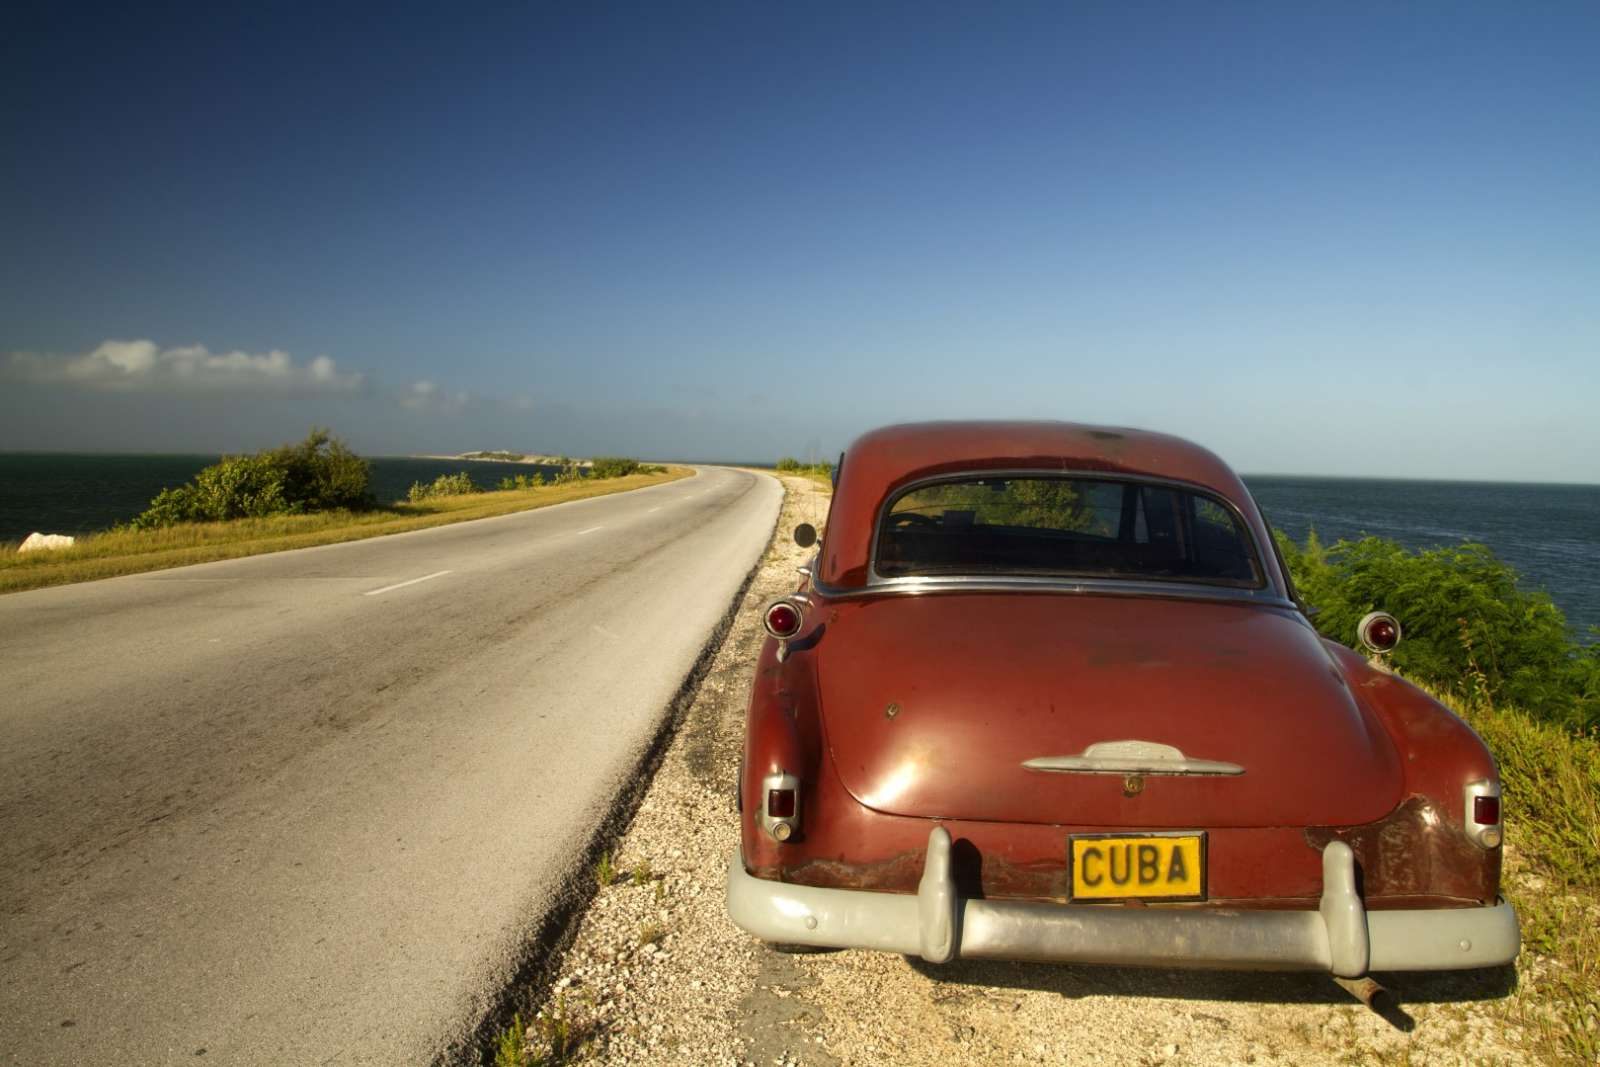 Classic car on the causeway to Cayos de Villa Clara, Cuba